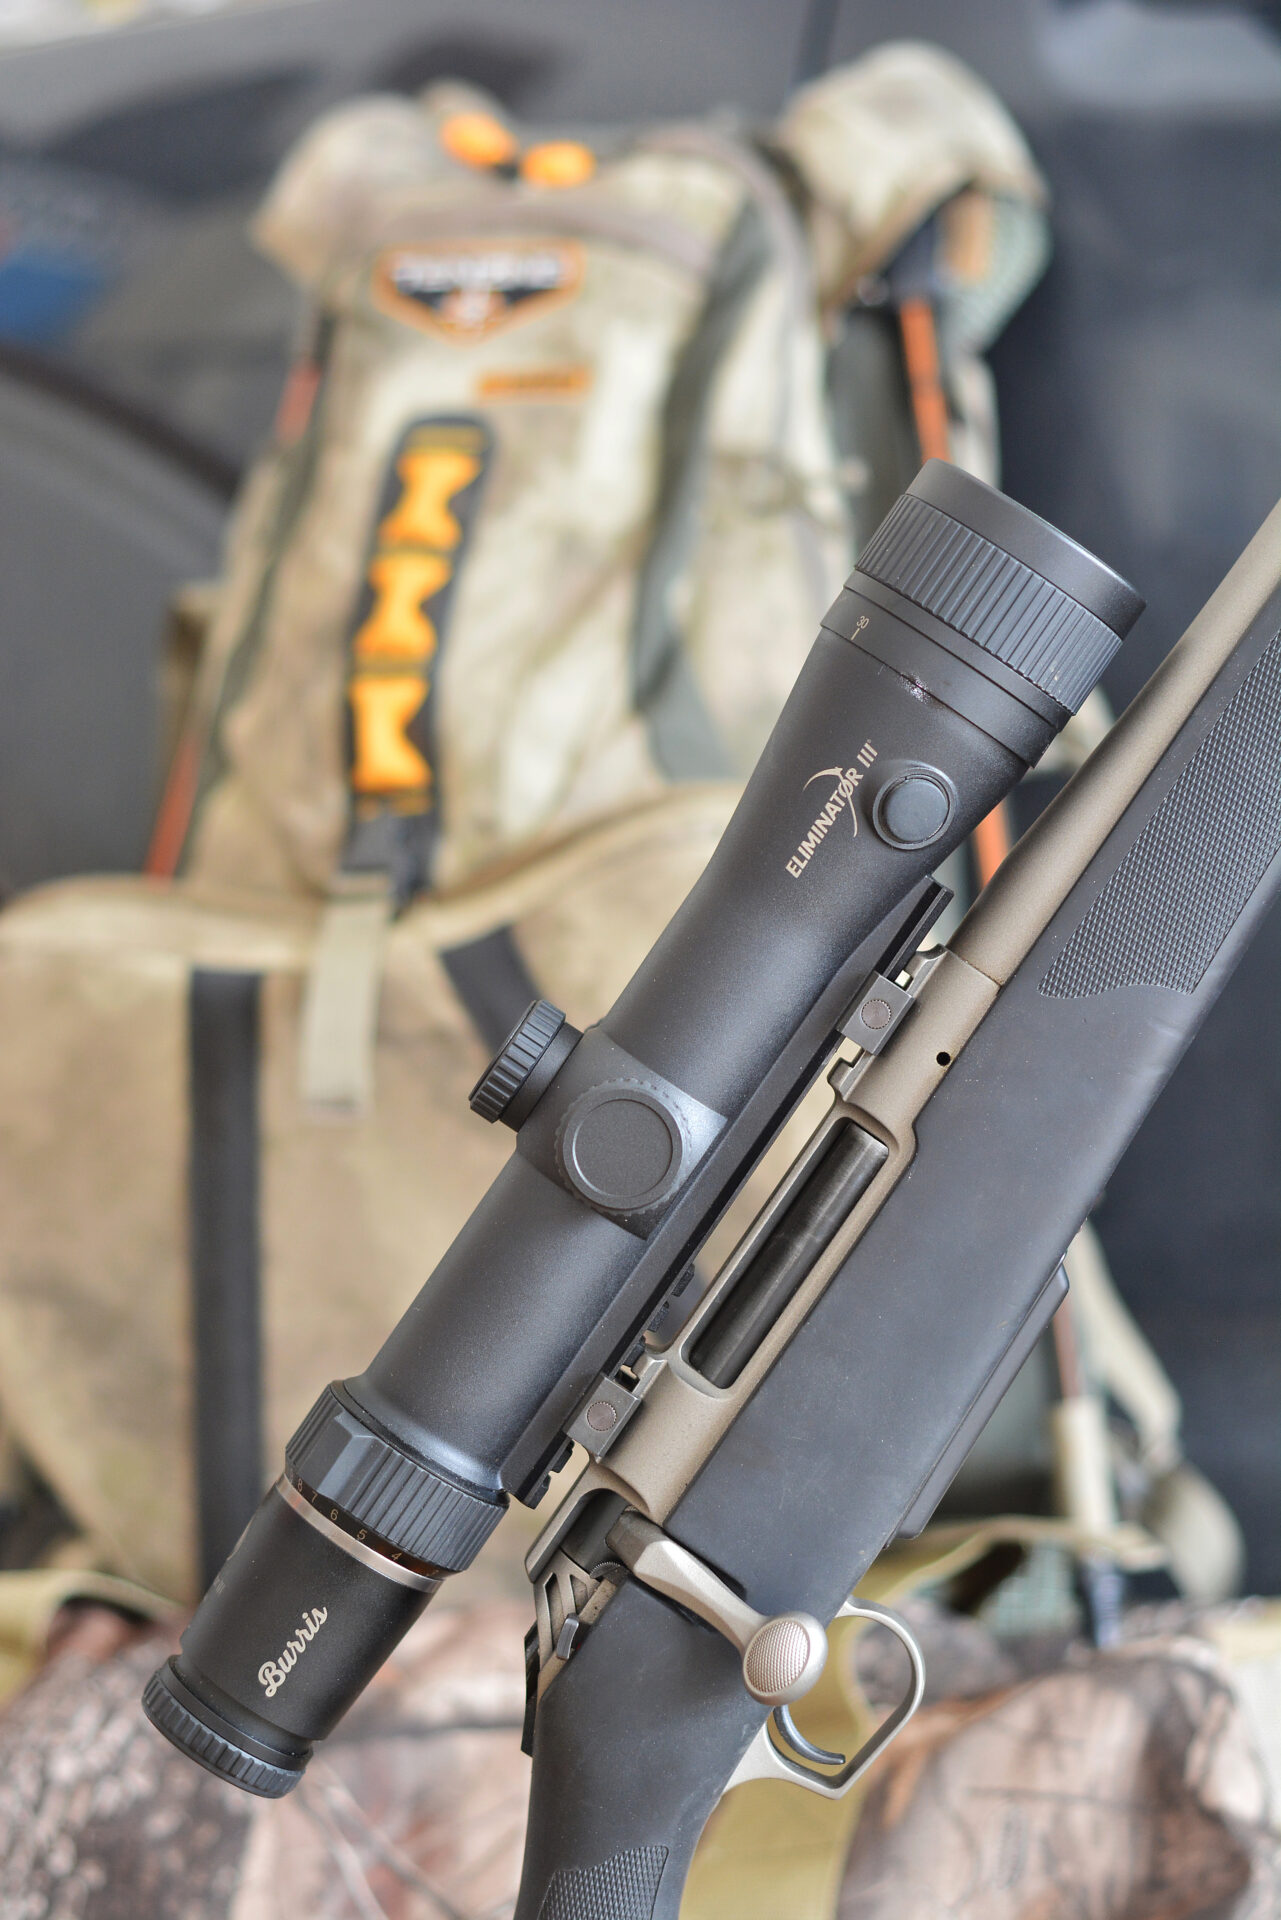 Laser rangefinders have been integrated into riflescopes for several years. The Burris Eliminator is in its fourth generation.